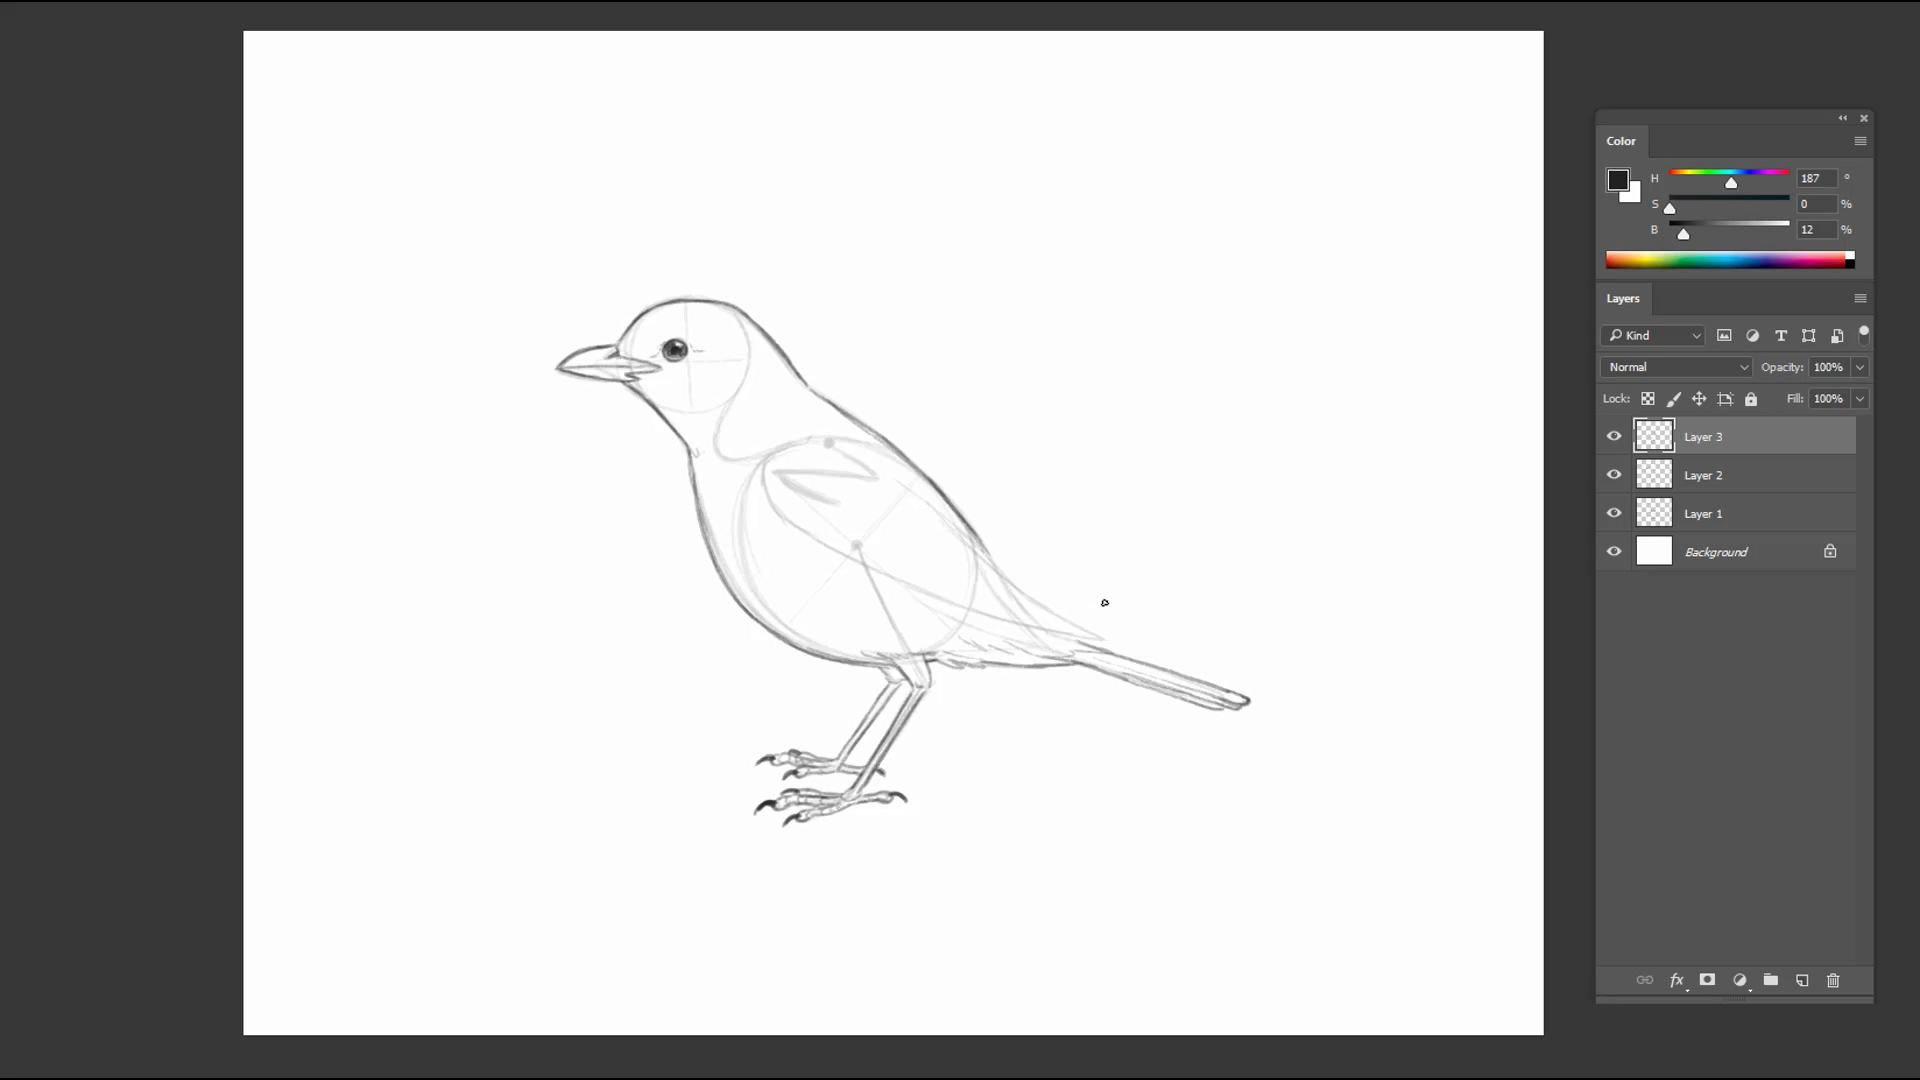 Pencil sketch of a bird